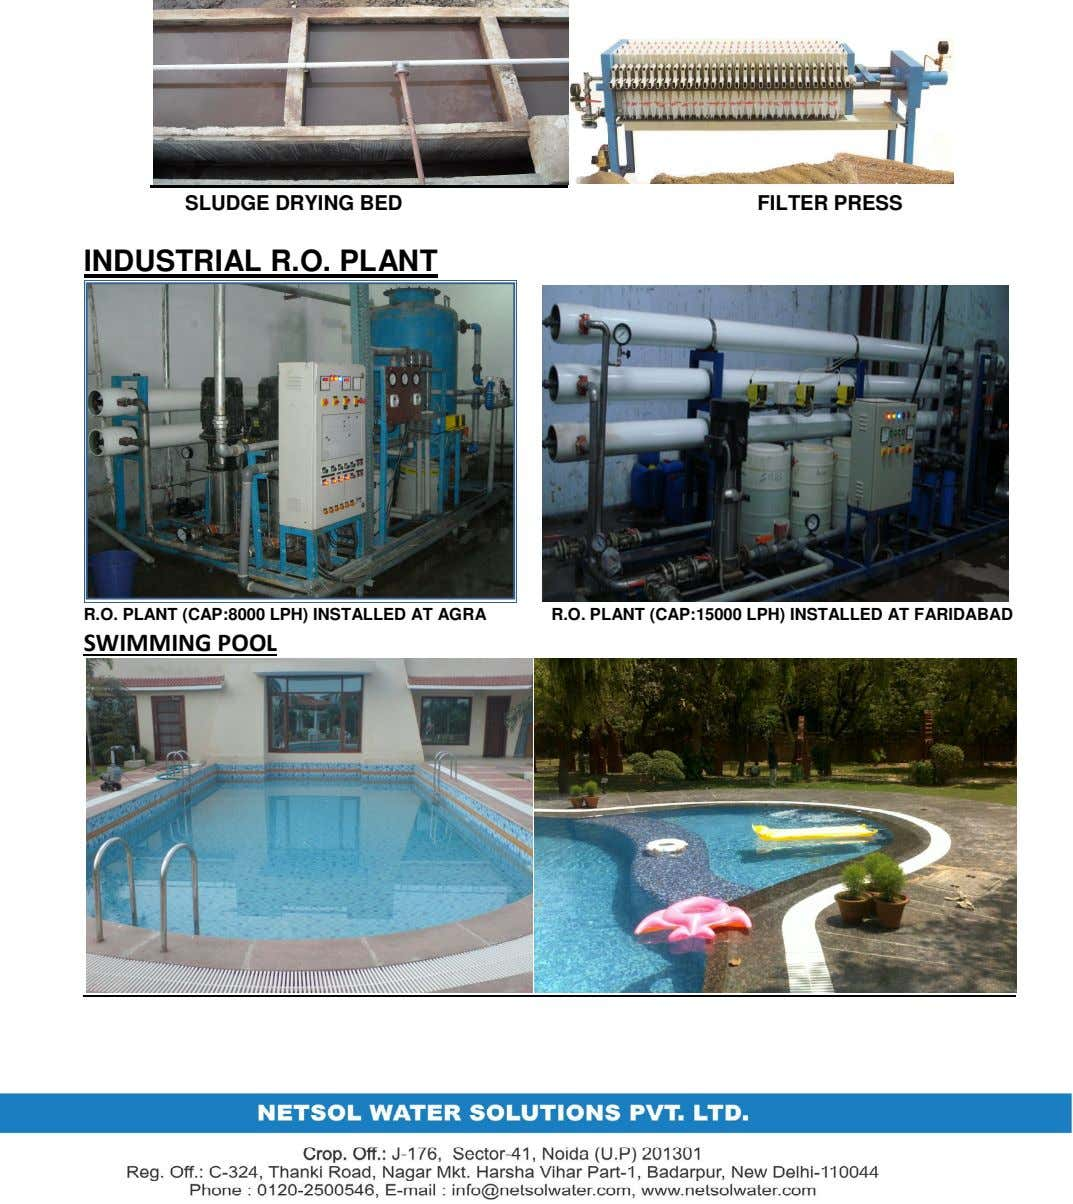 SLUDGE DRYING BED FILTER PRESS INDUSTRIAL R.O. PLANT R.O. PLANT (CAP:8000 LPH) INSTALLED AT AGRA